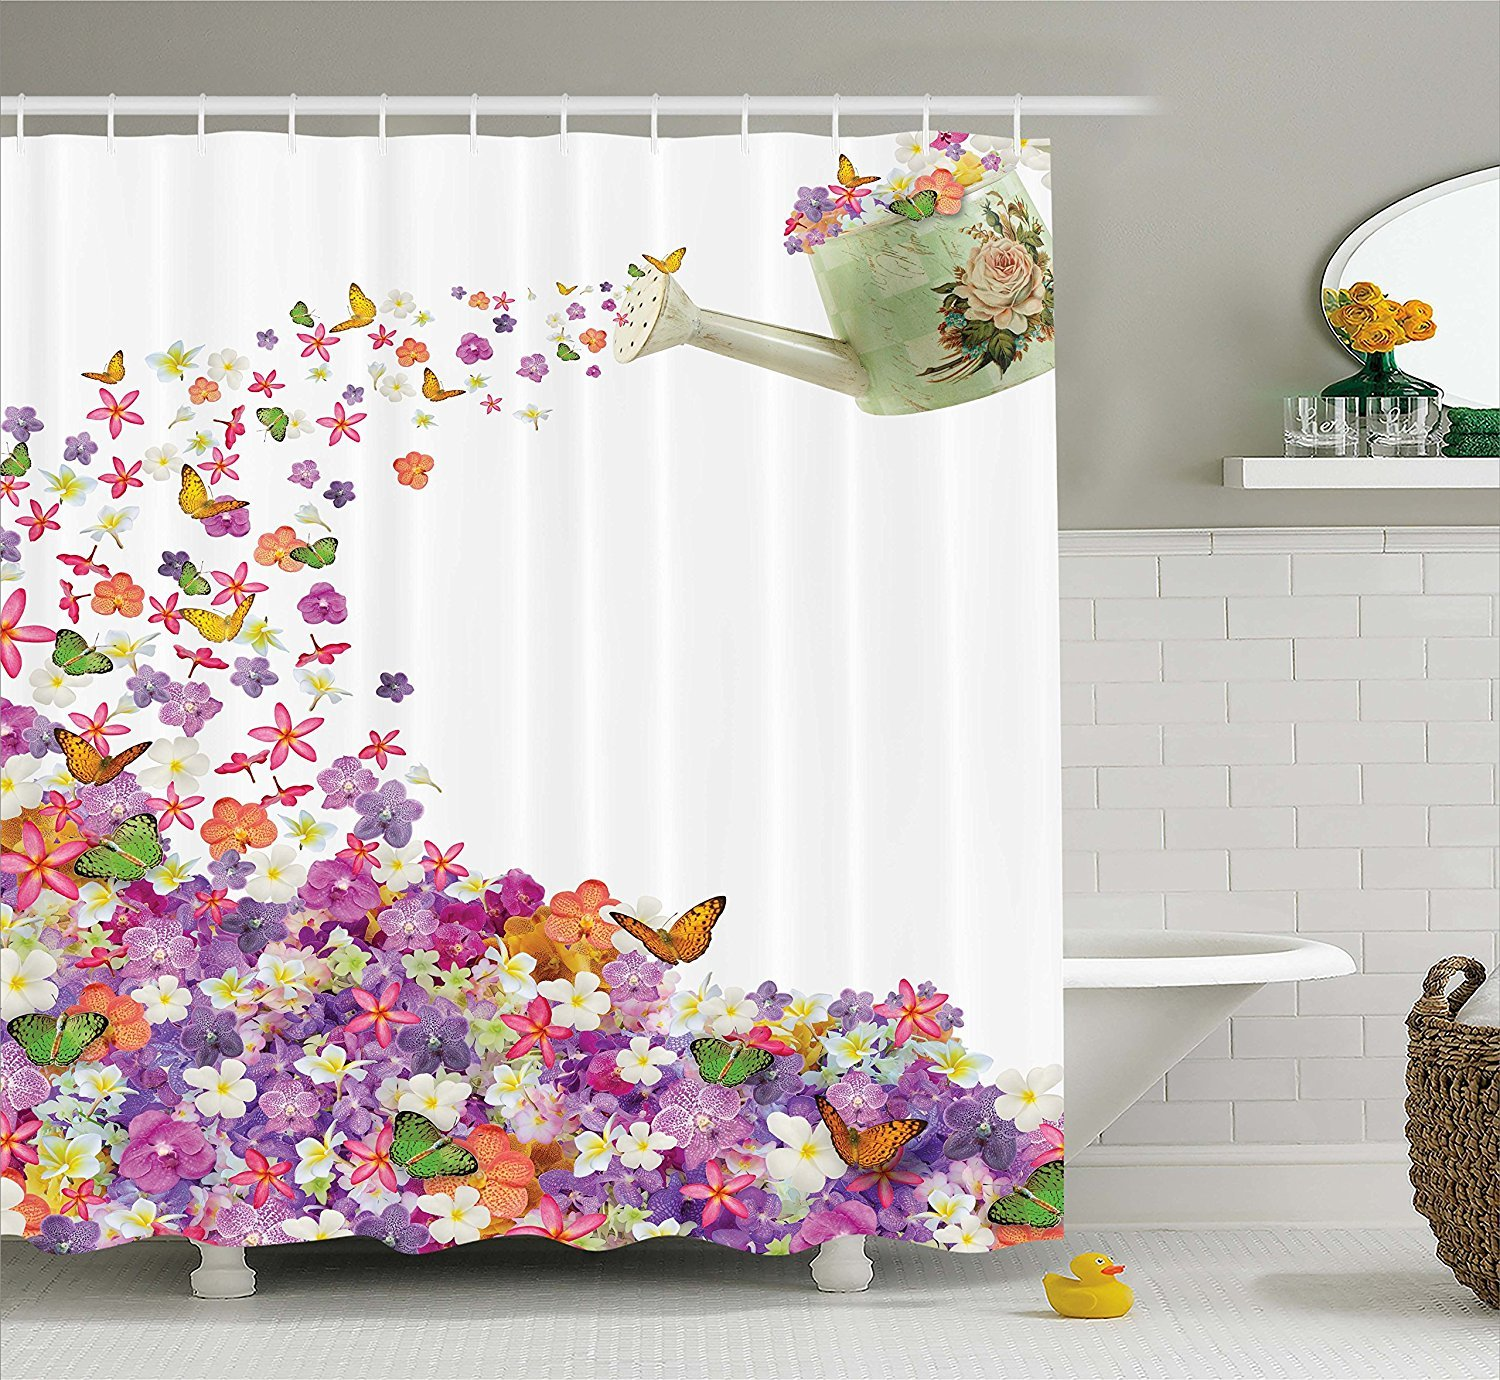 Amazon.com: Colorful Flowers Shower Curtain Floral Decor by, Pansy ...